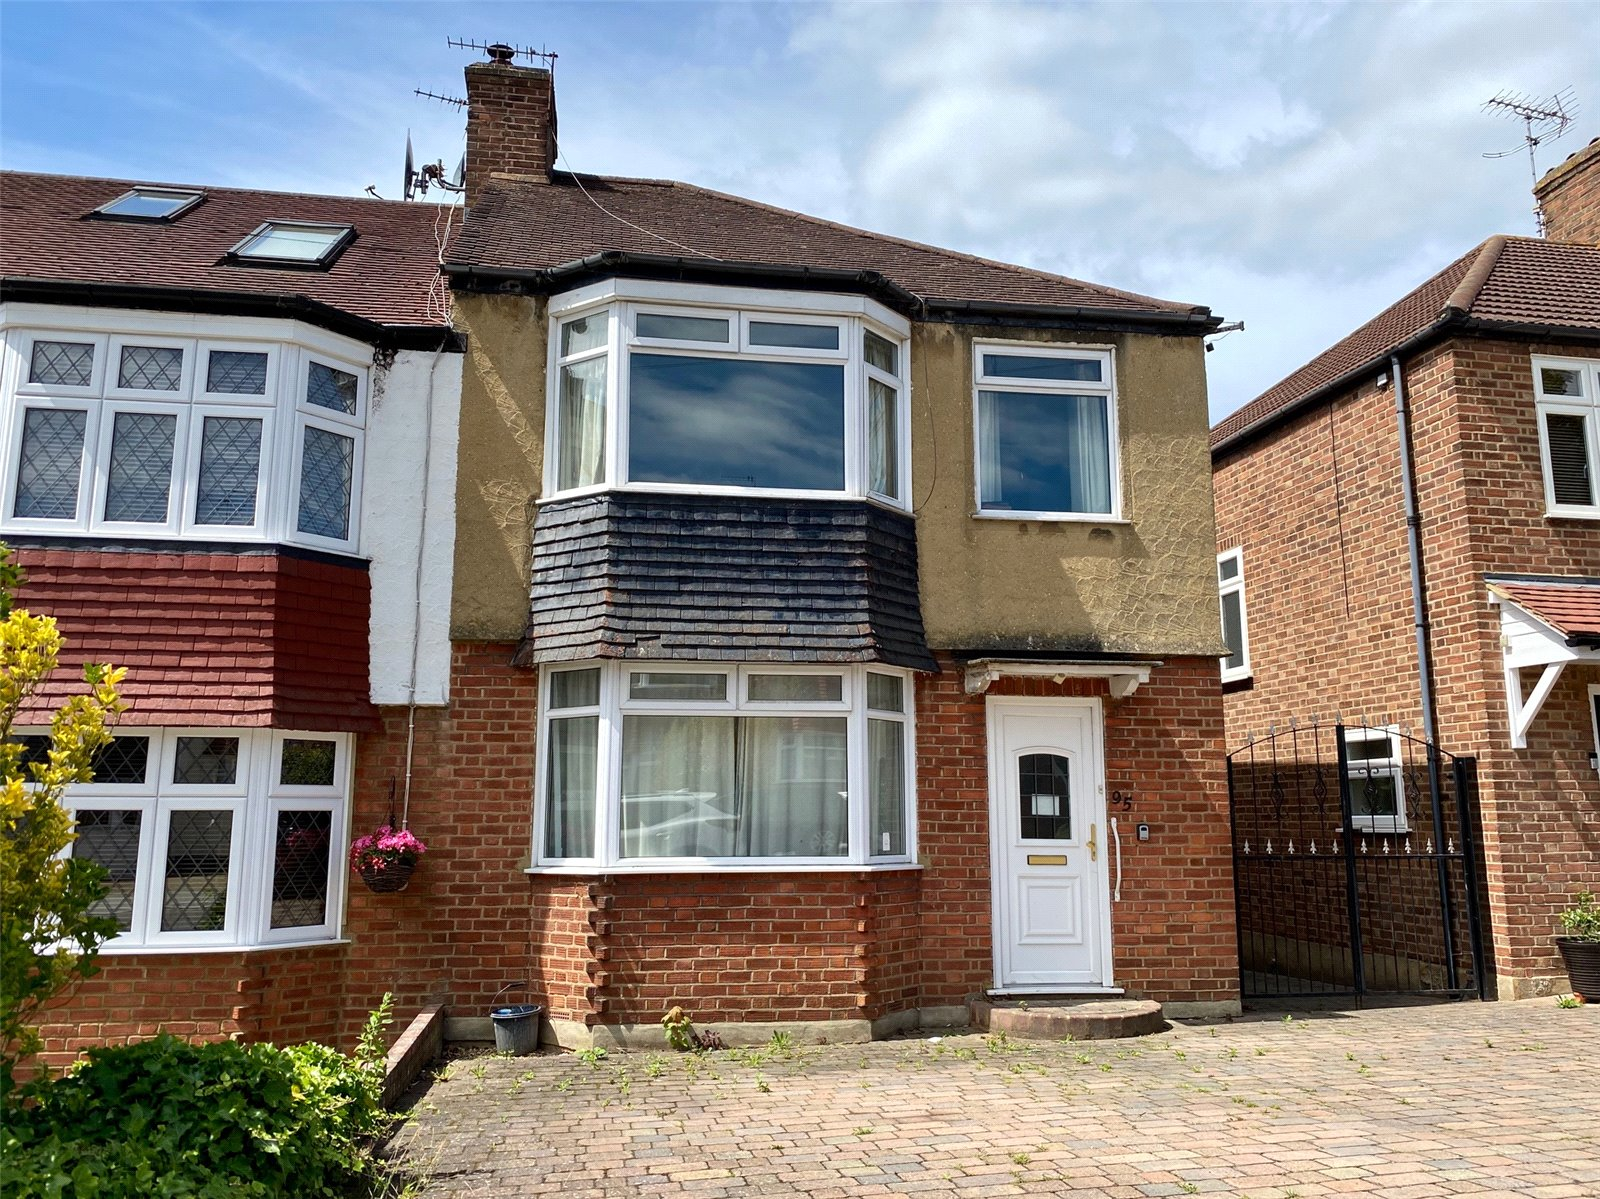 3 bed house for sale in Barnet, EN5 2BP  - Property Image 1